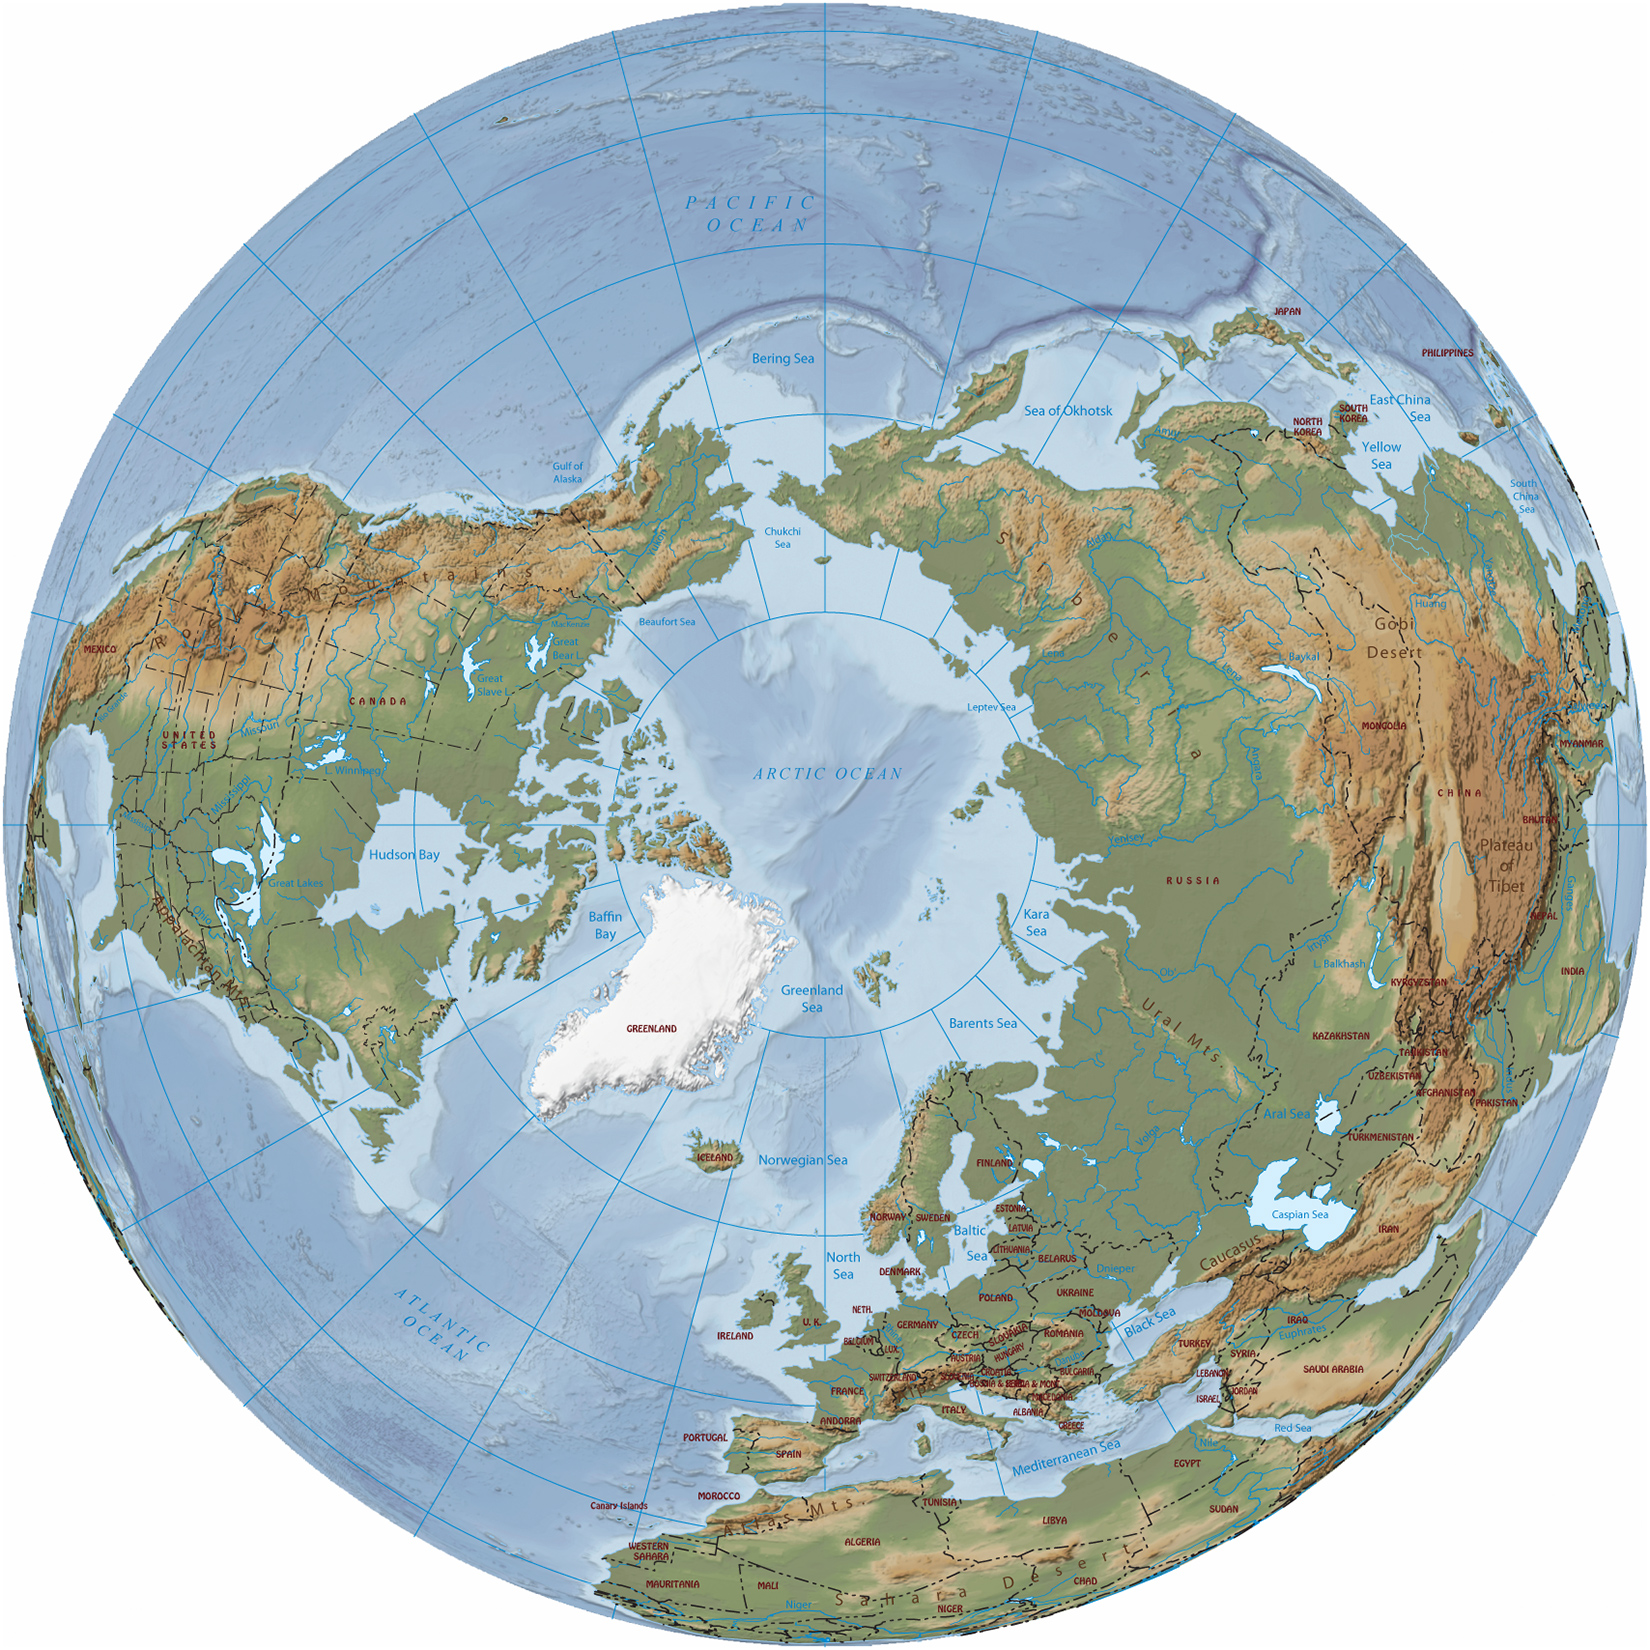 Arctic ocean region map there are 8 arctic nations canada denmark finland iceland norway sweden russia and united states of america alaska alaska political map gumiabroncs Choice Image